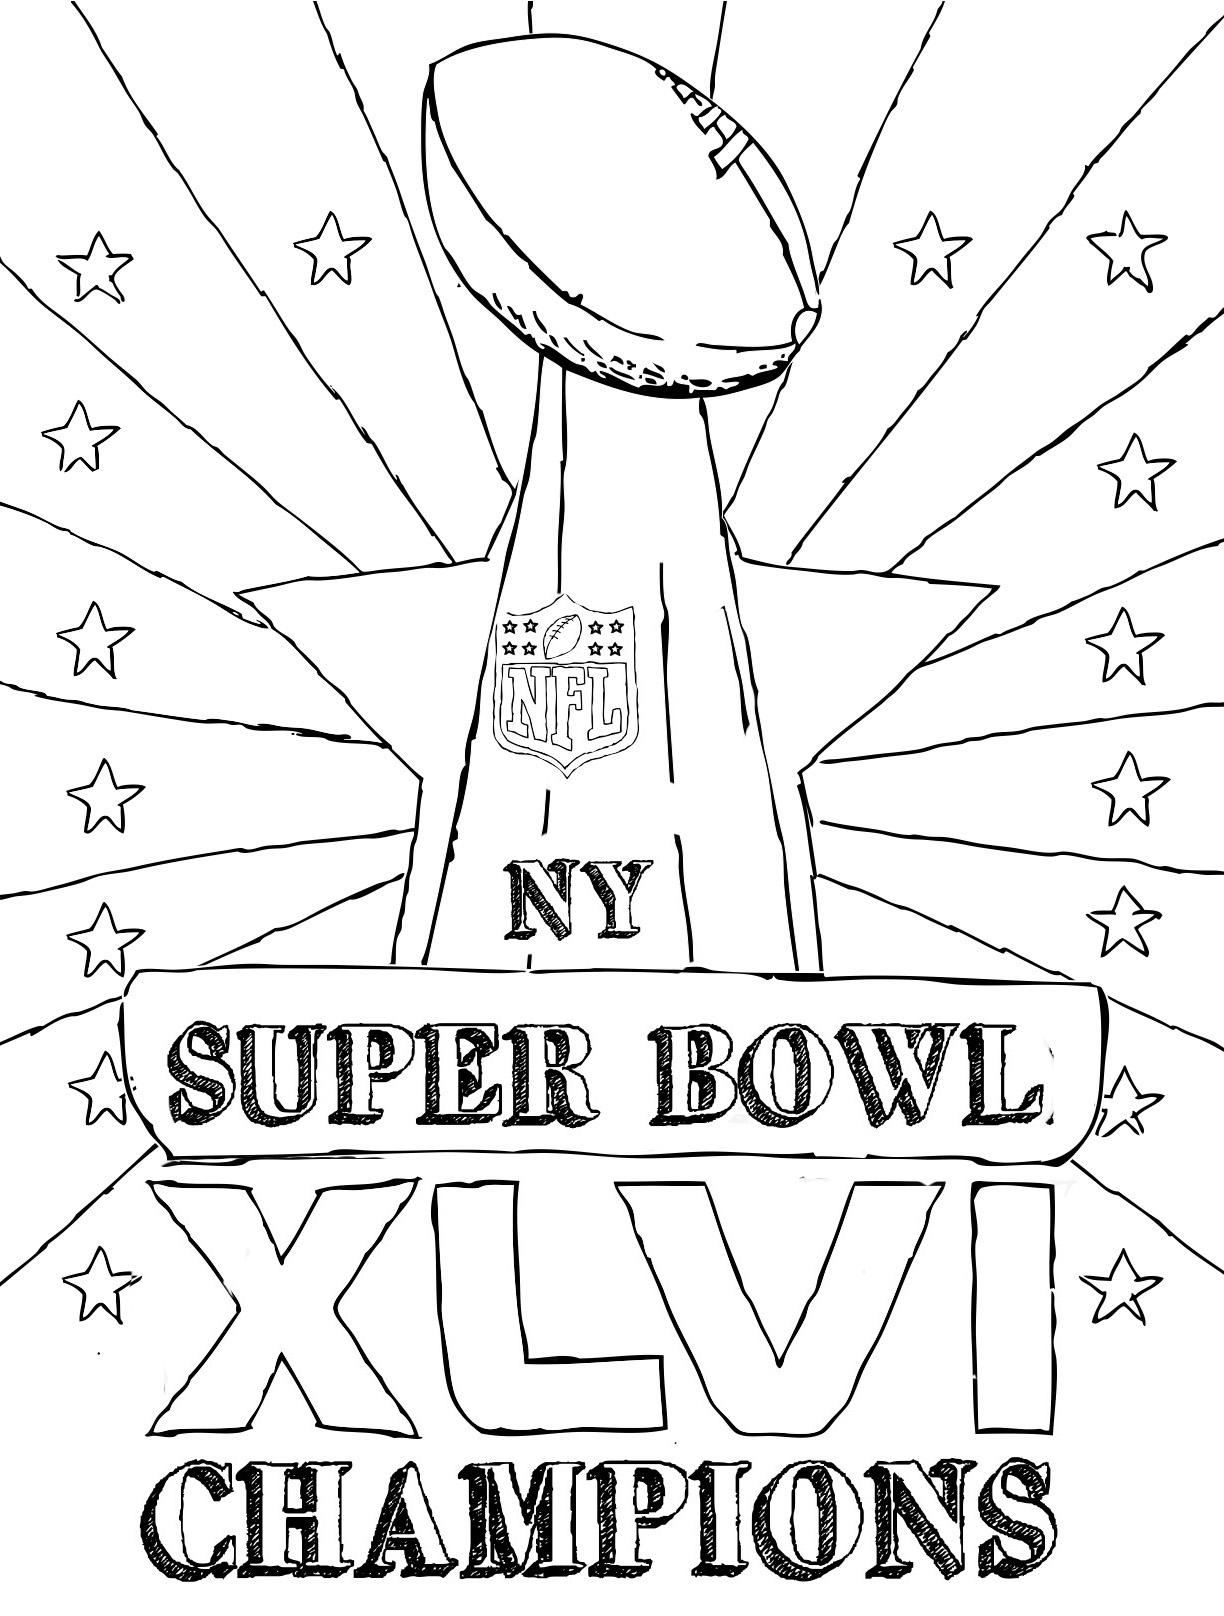 Super Bowl Drawing At Getdrawings